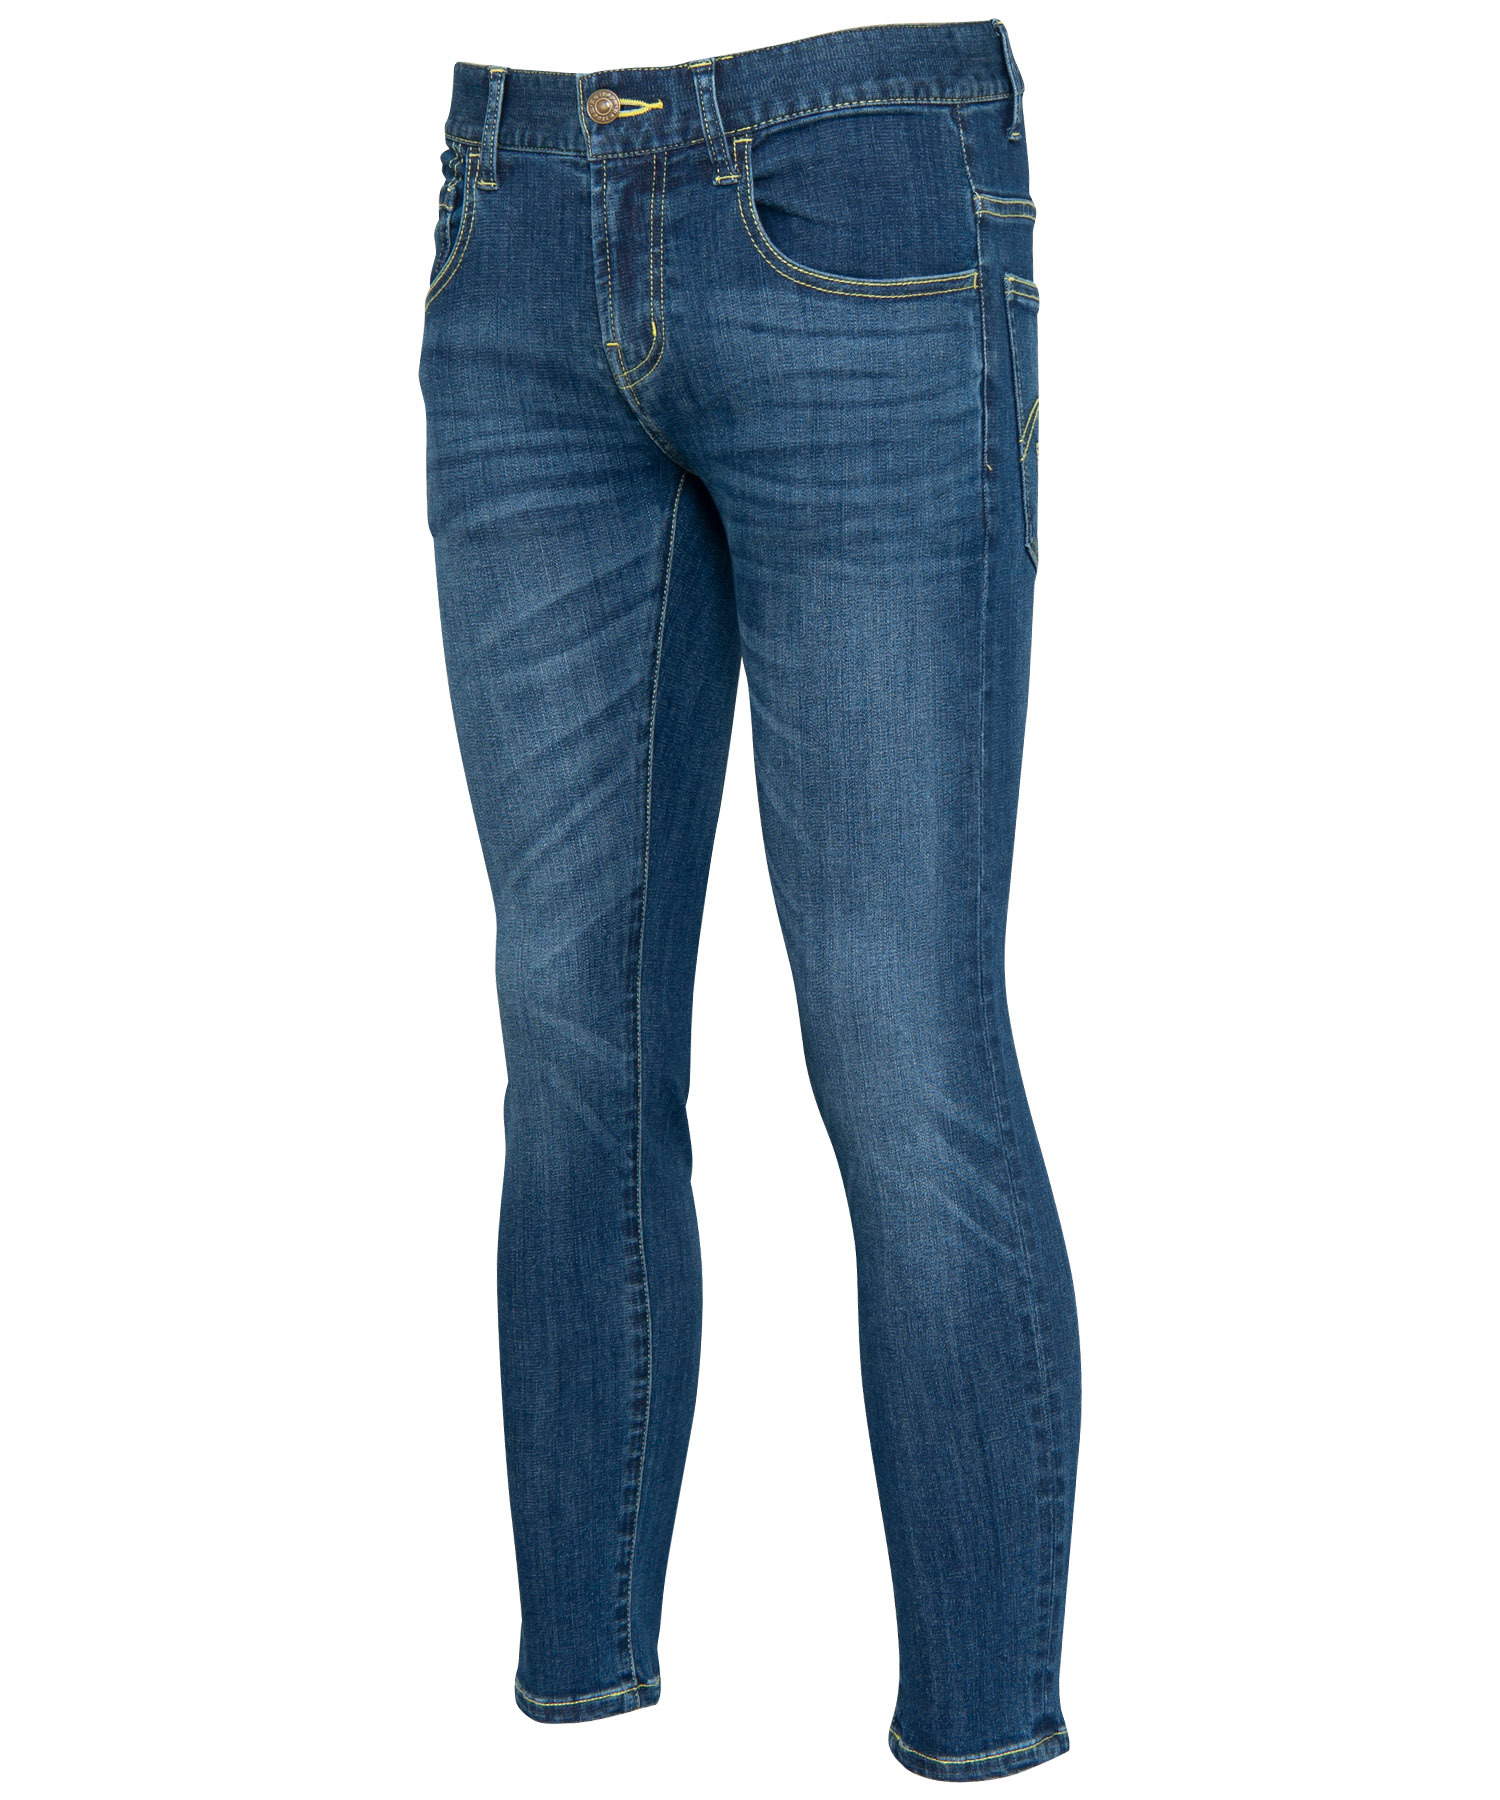 VINTAGE HYPER STRETCH SKINNY DENIM[REP067]